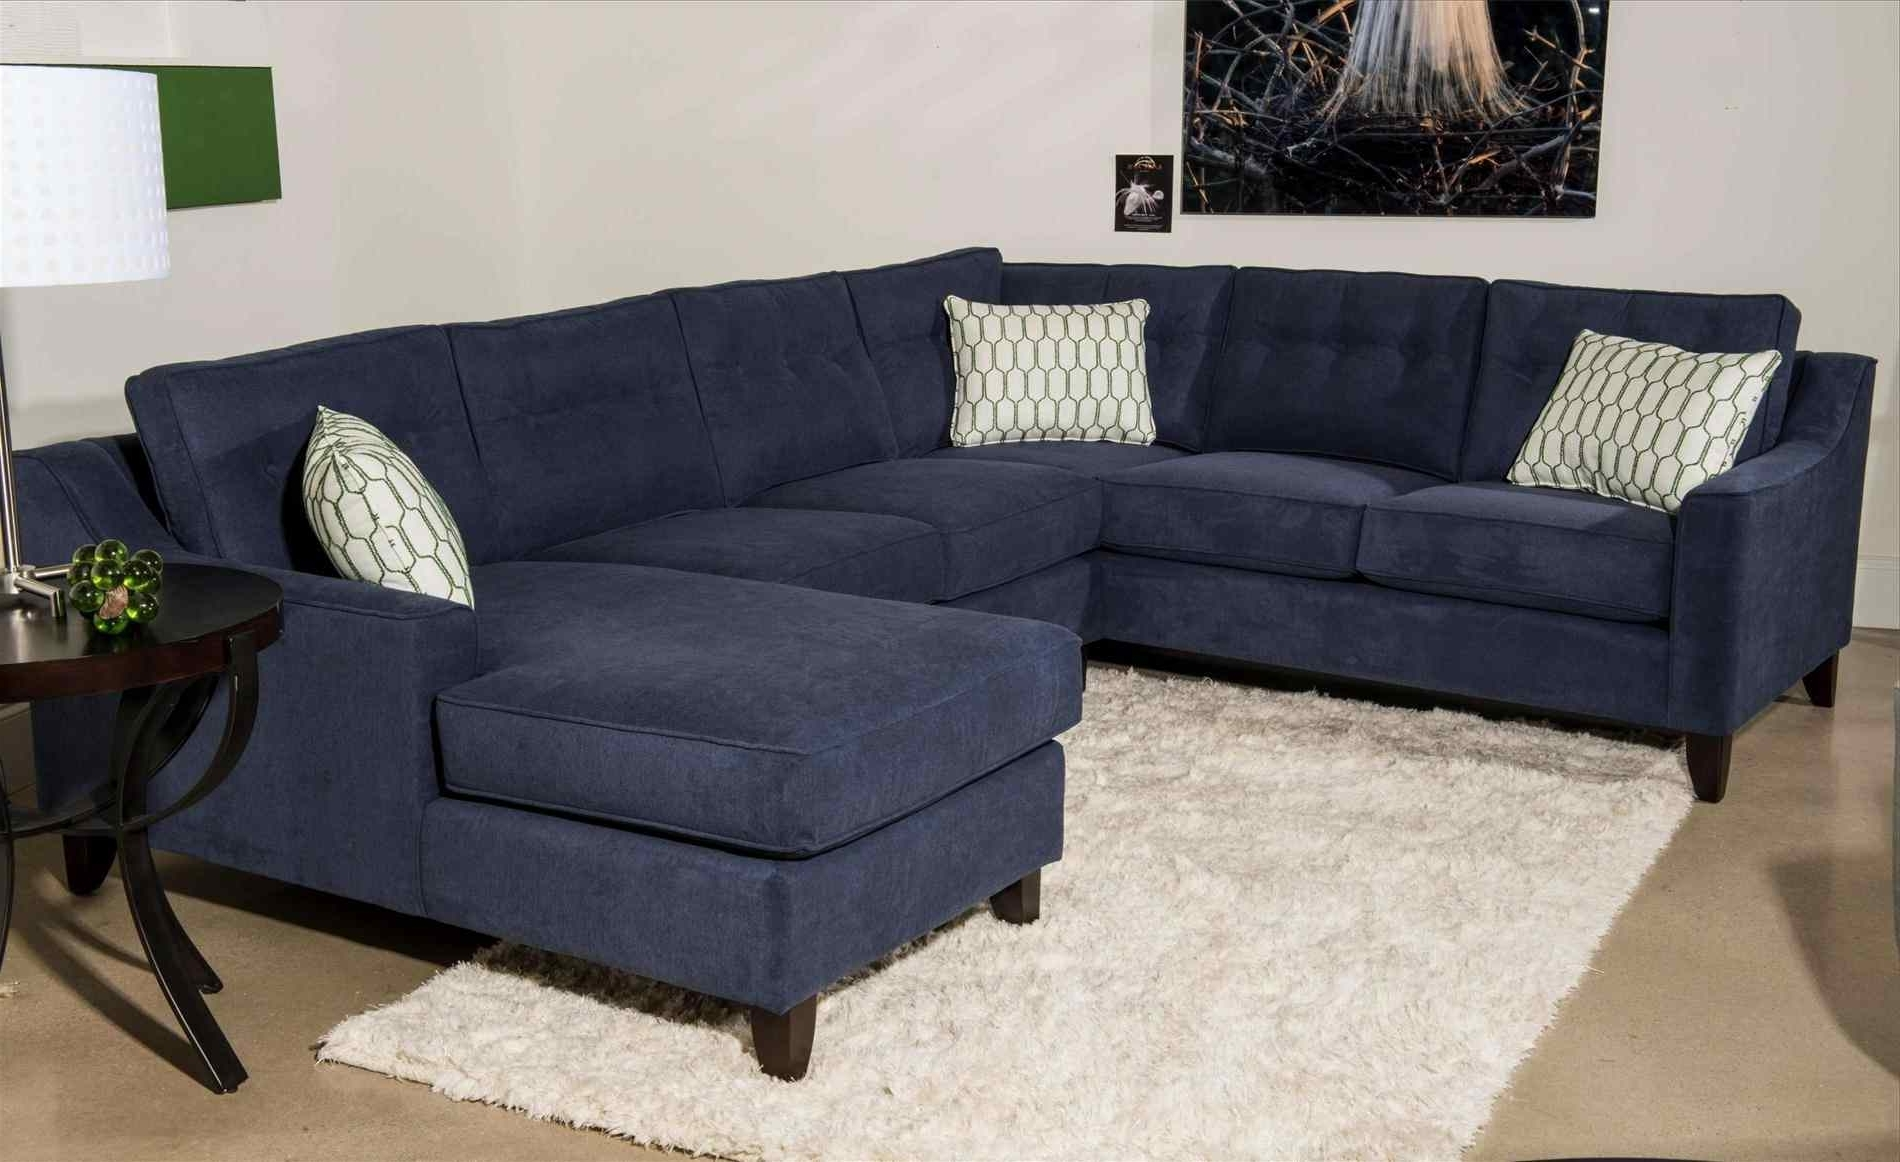 Newest Couch : Clearance Big Lots Sofa Blue Sectional Couch Small Ethan Regarding Big Lots Chaise Lounges (View 8 of 15)